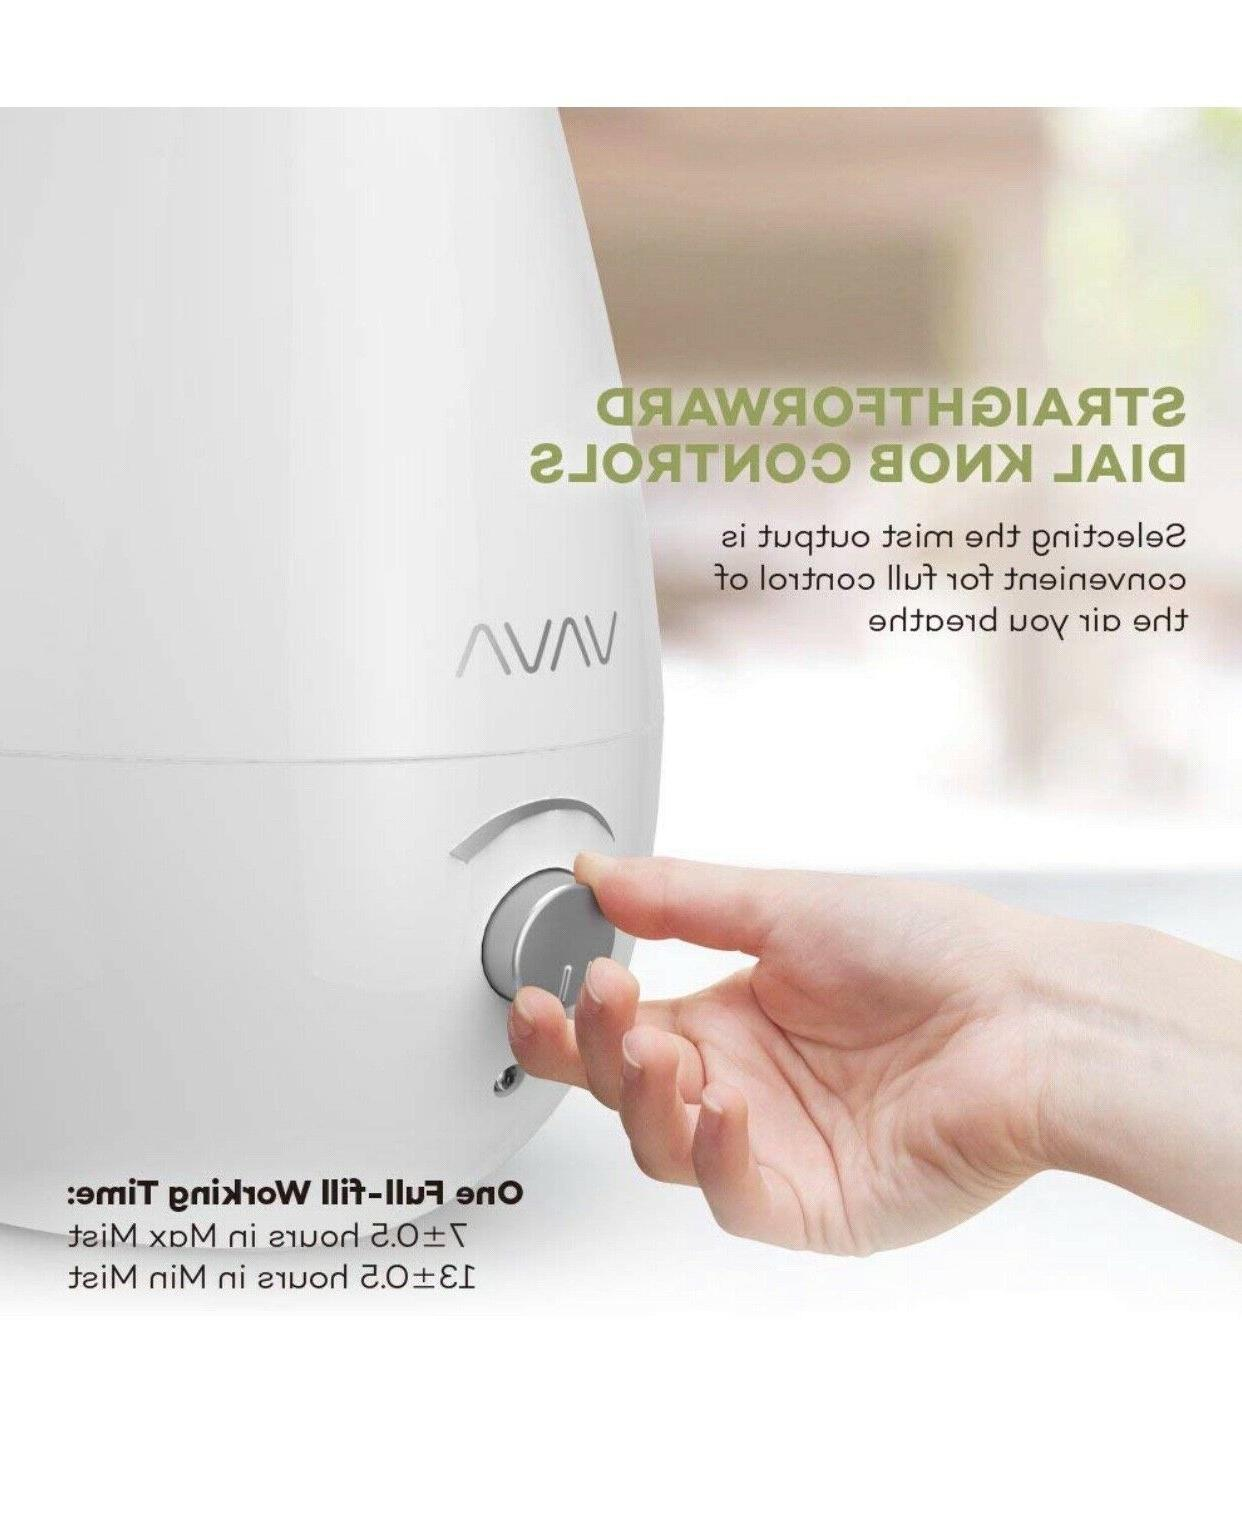 VAVA for Quiet and Ultrasonic Humidifier